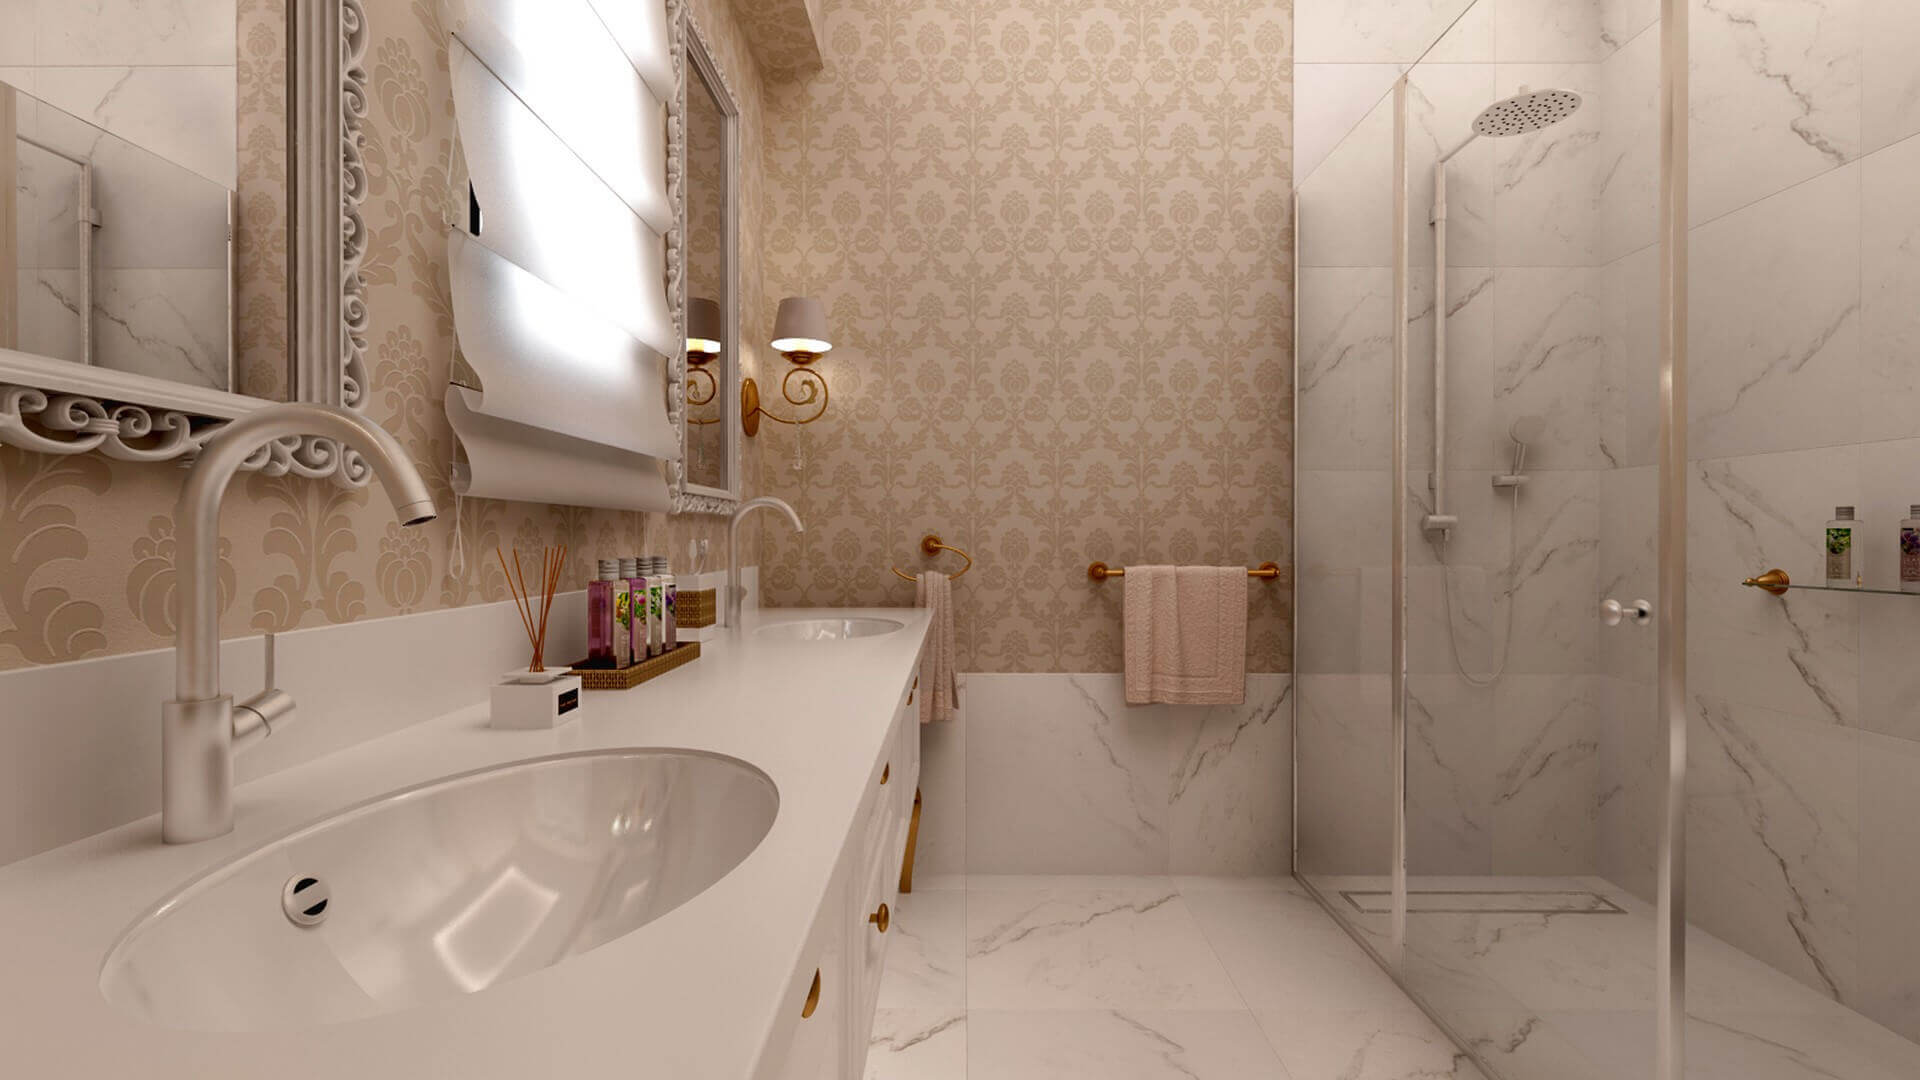 Ankorman Evleri 2873 Private Project Residential